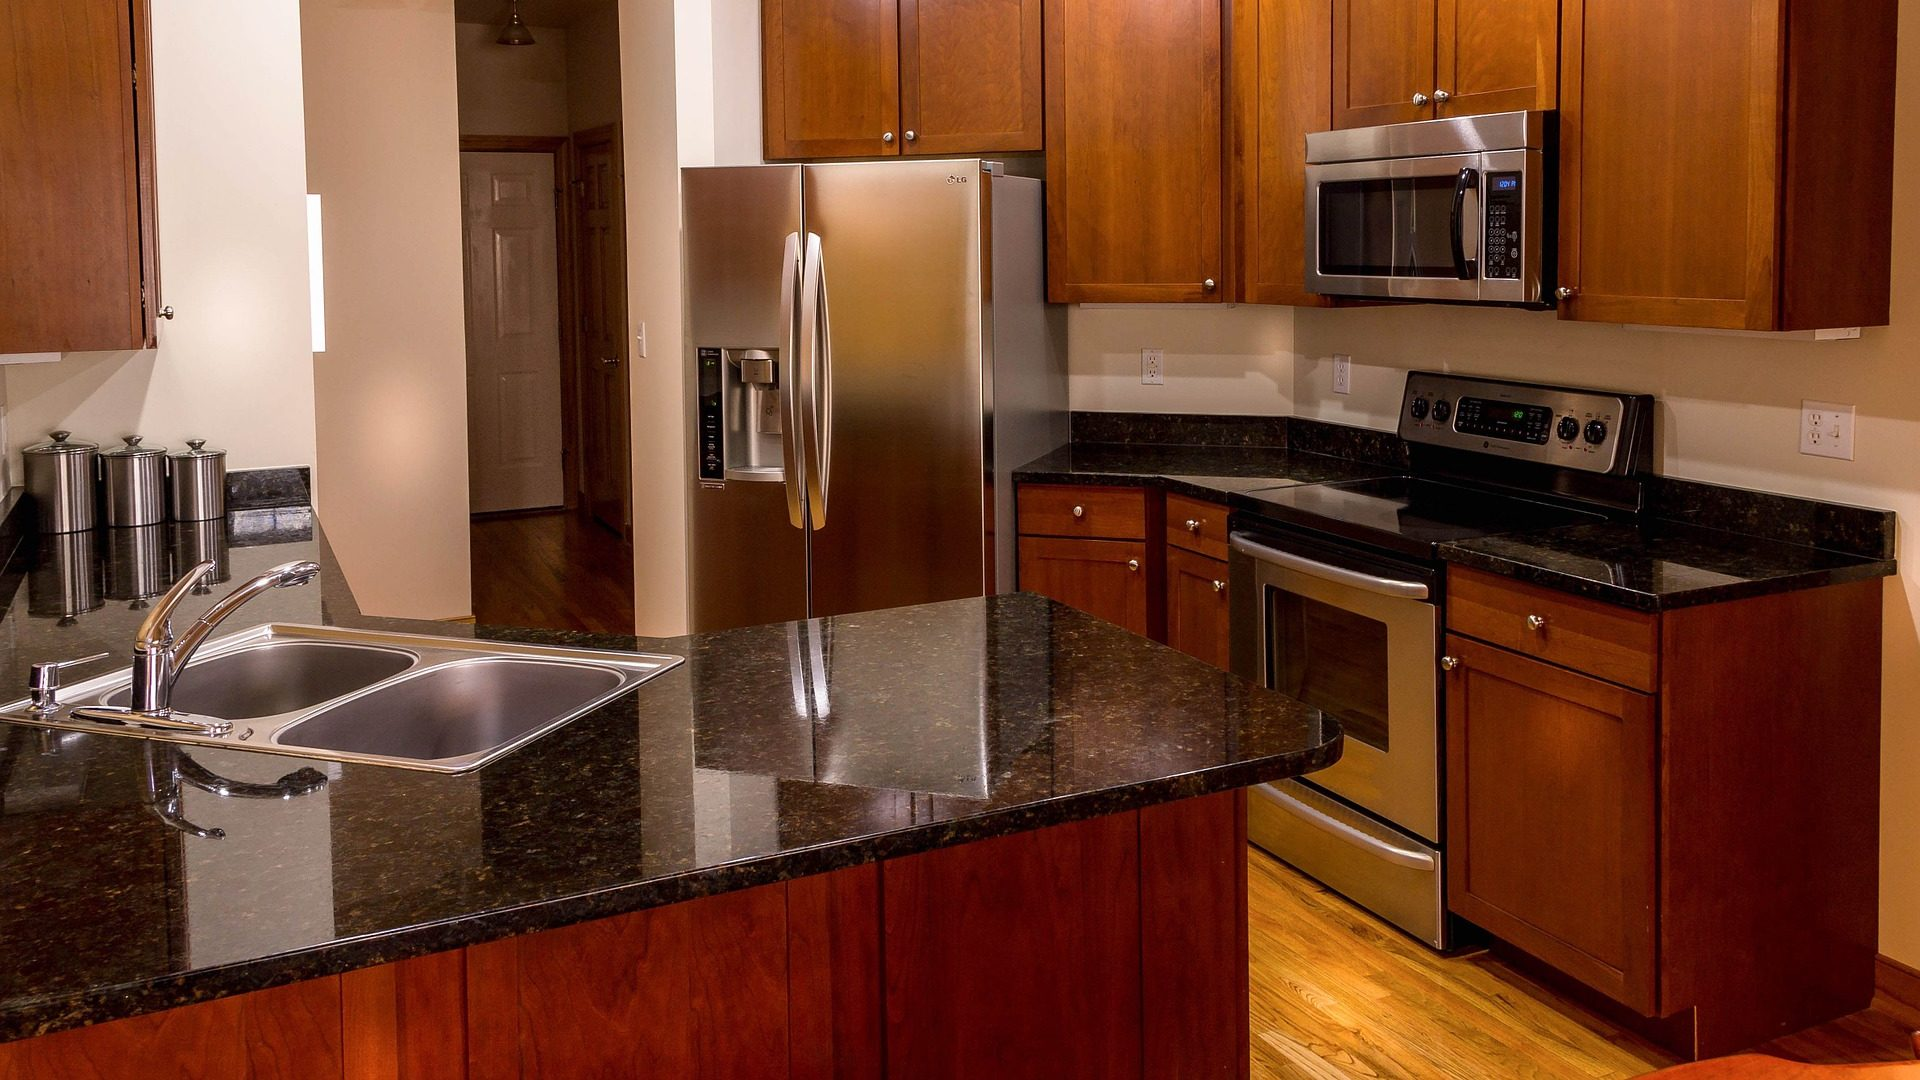 San Francisco Custom Kitchen, Bath, & Cabinet Remodeling Services